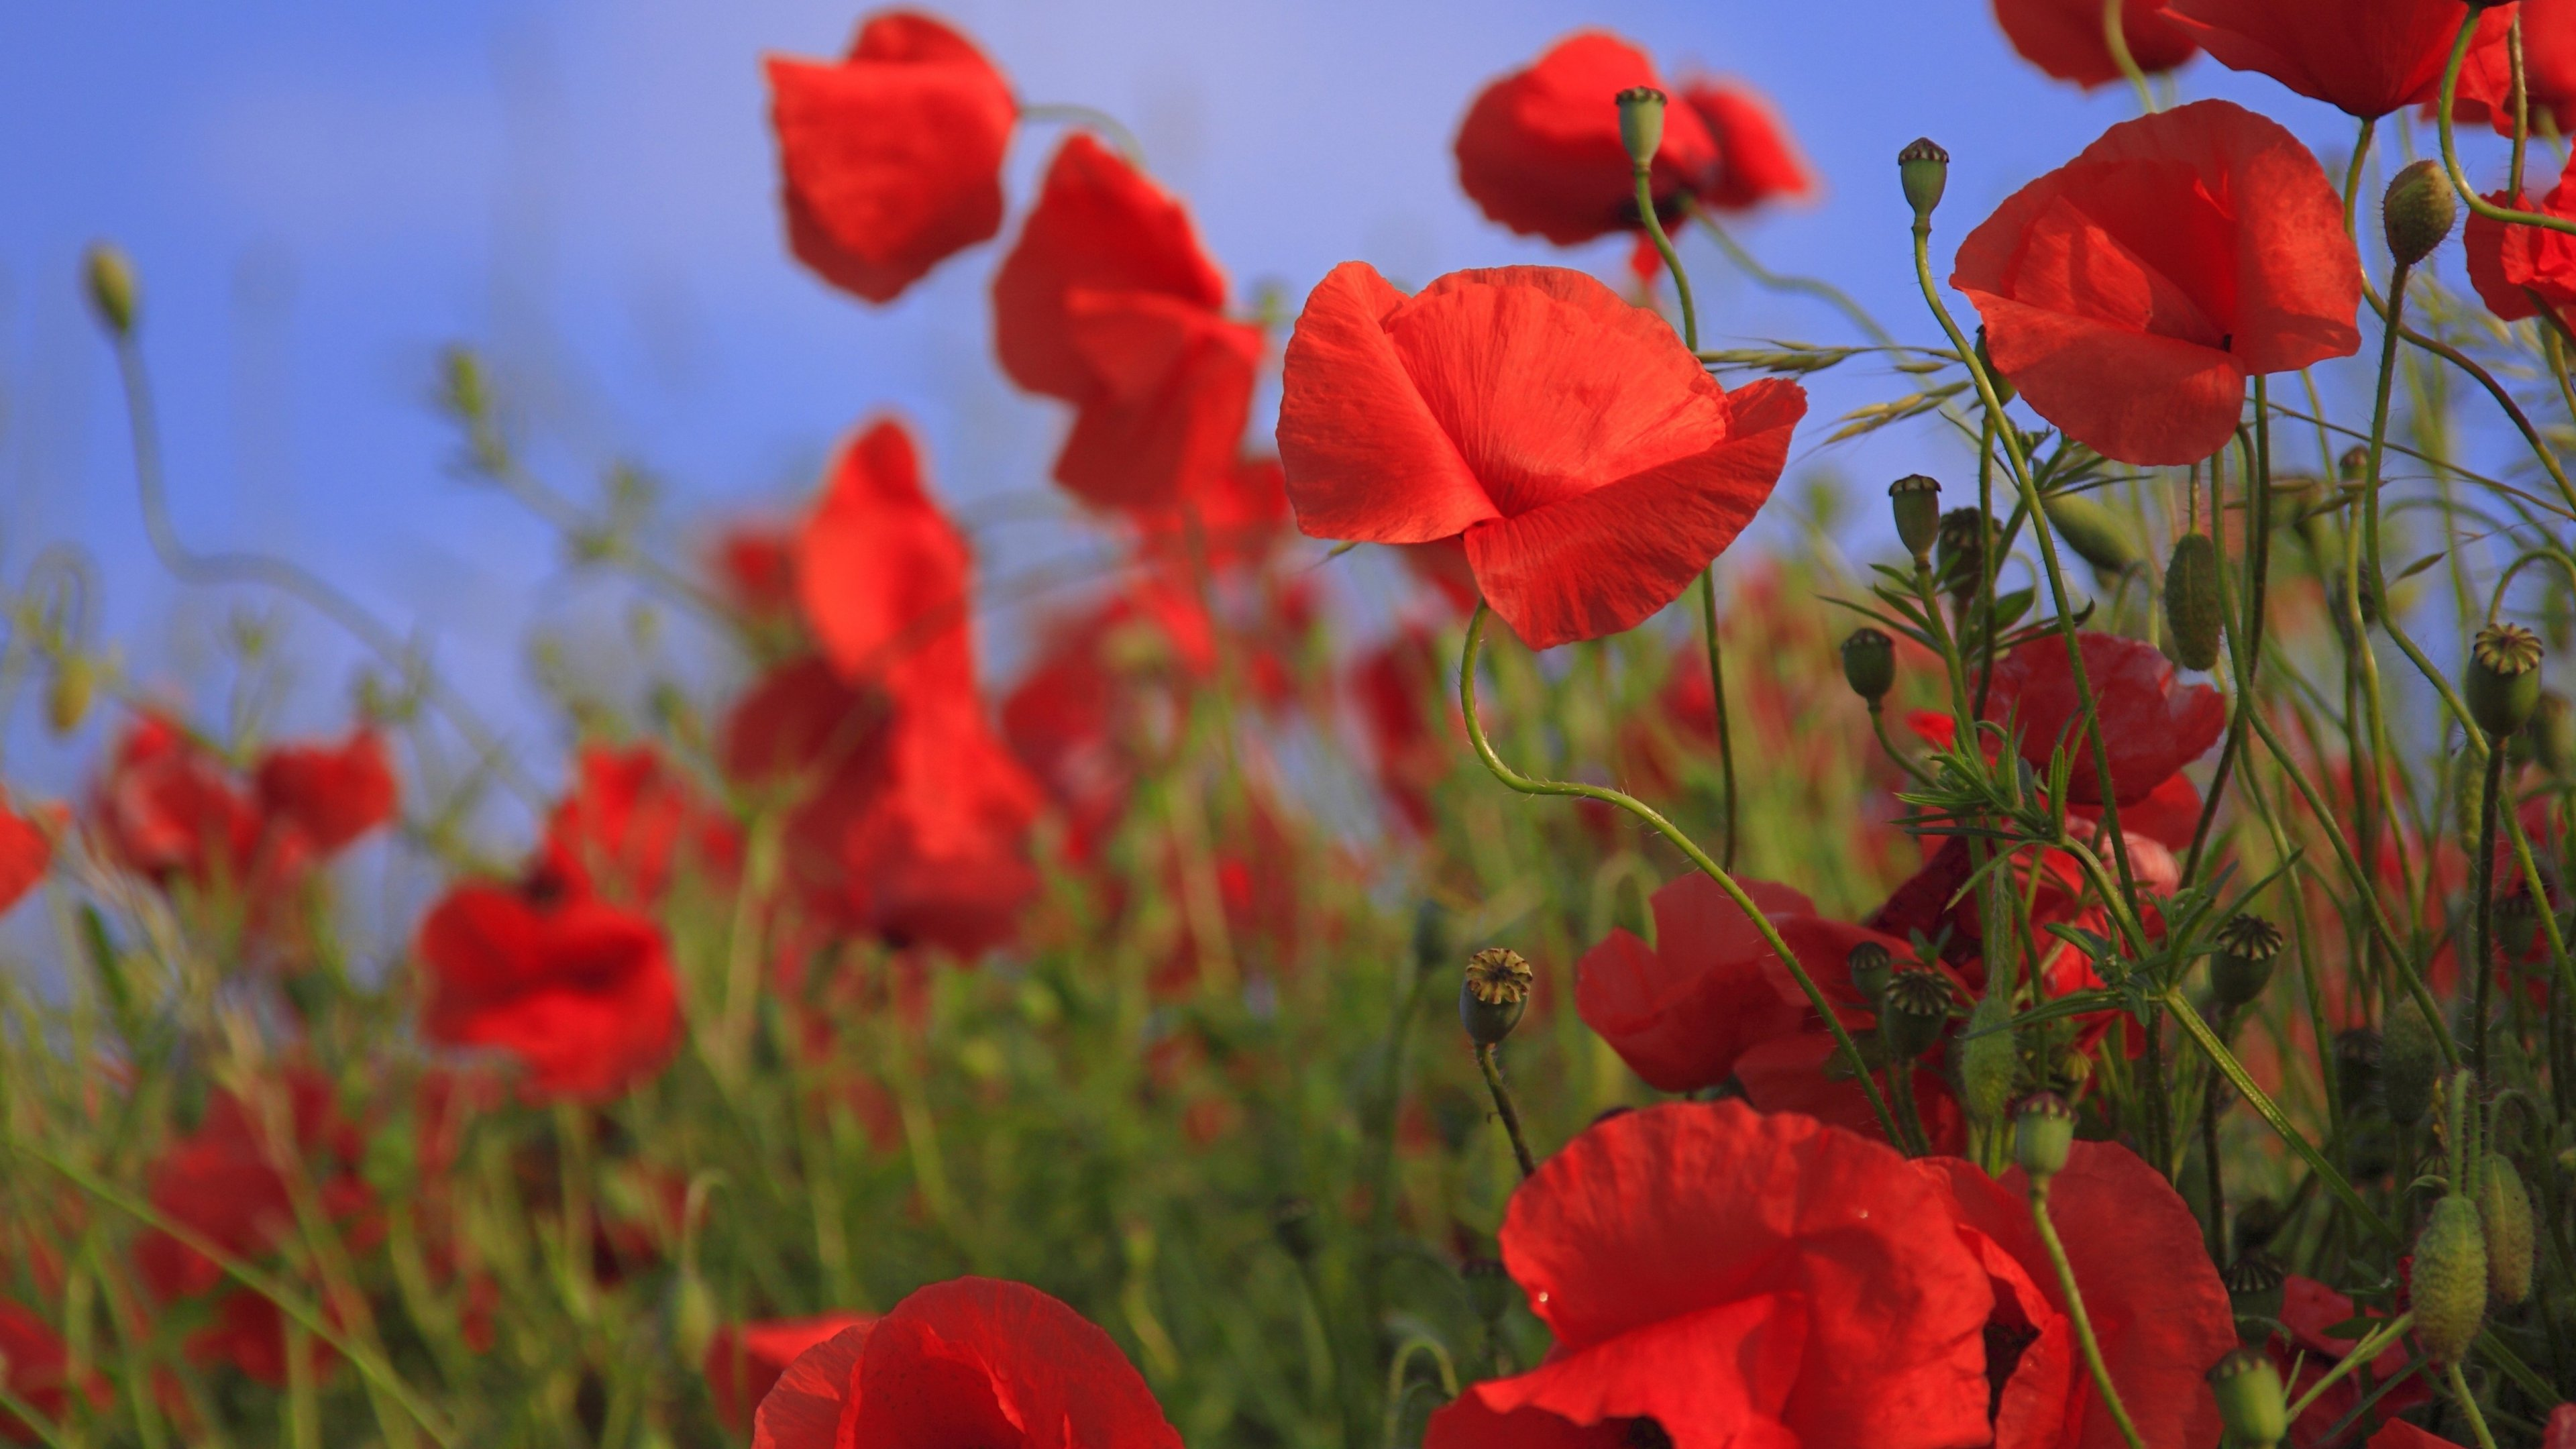 red poppies wallpaper - mobile & desktop background